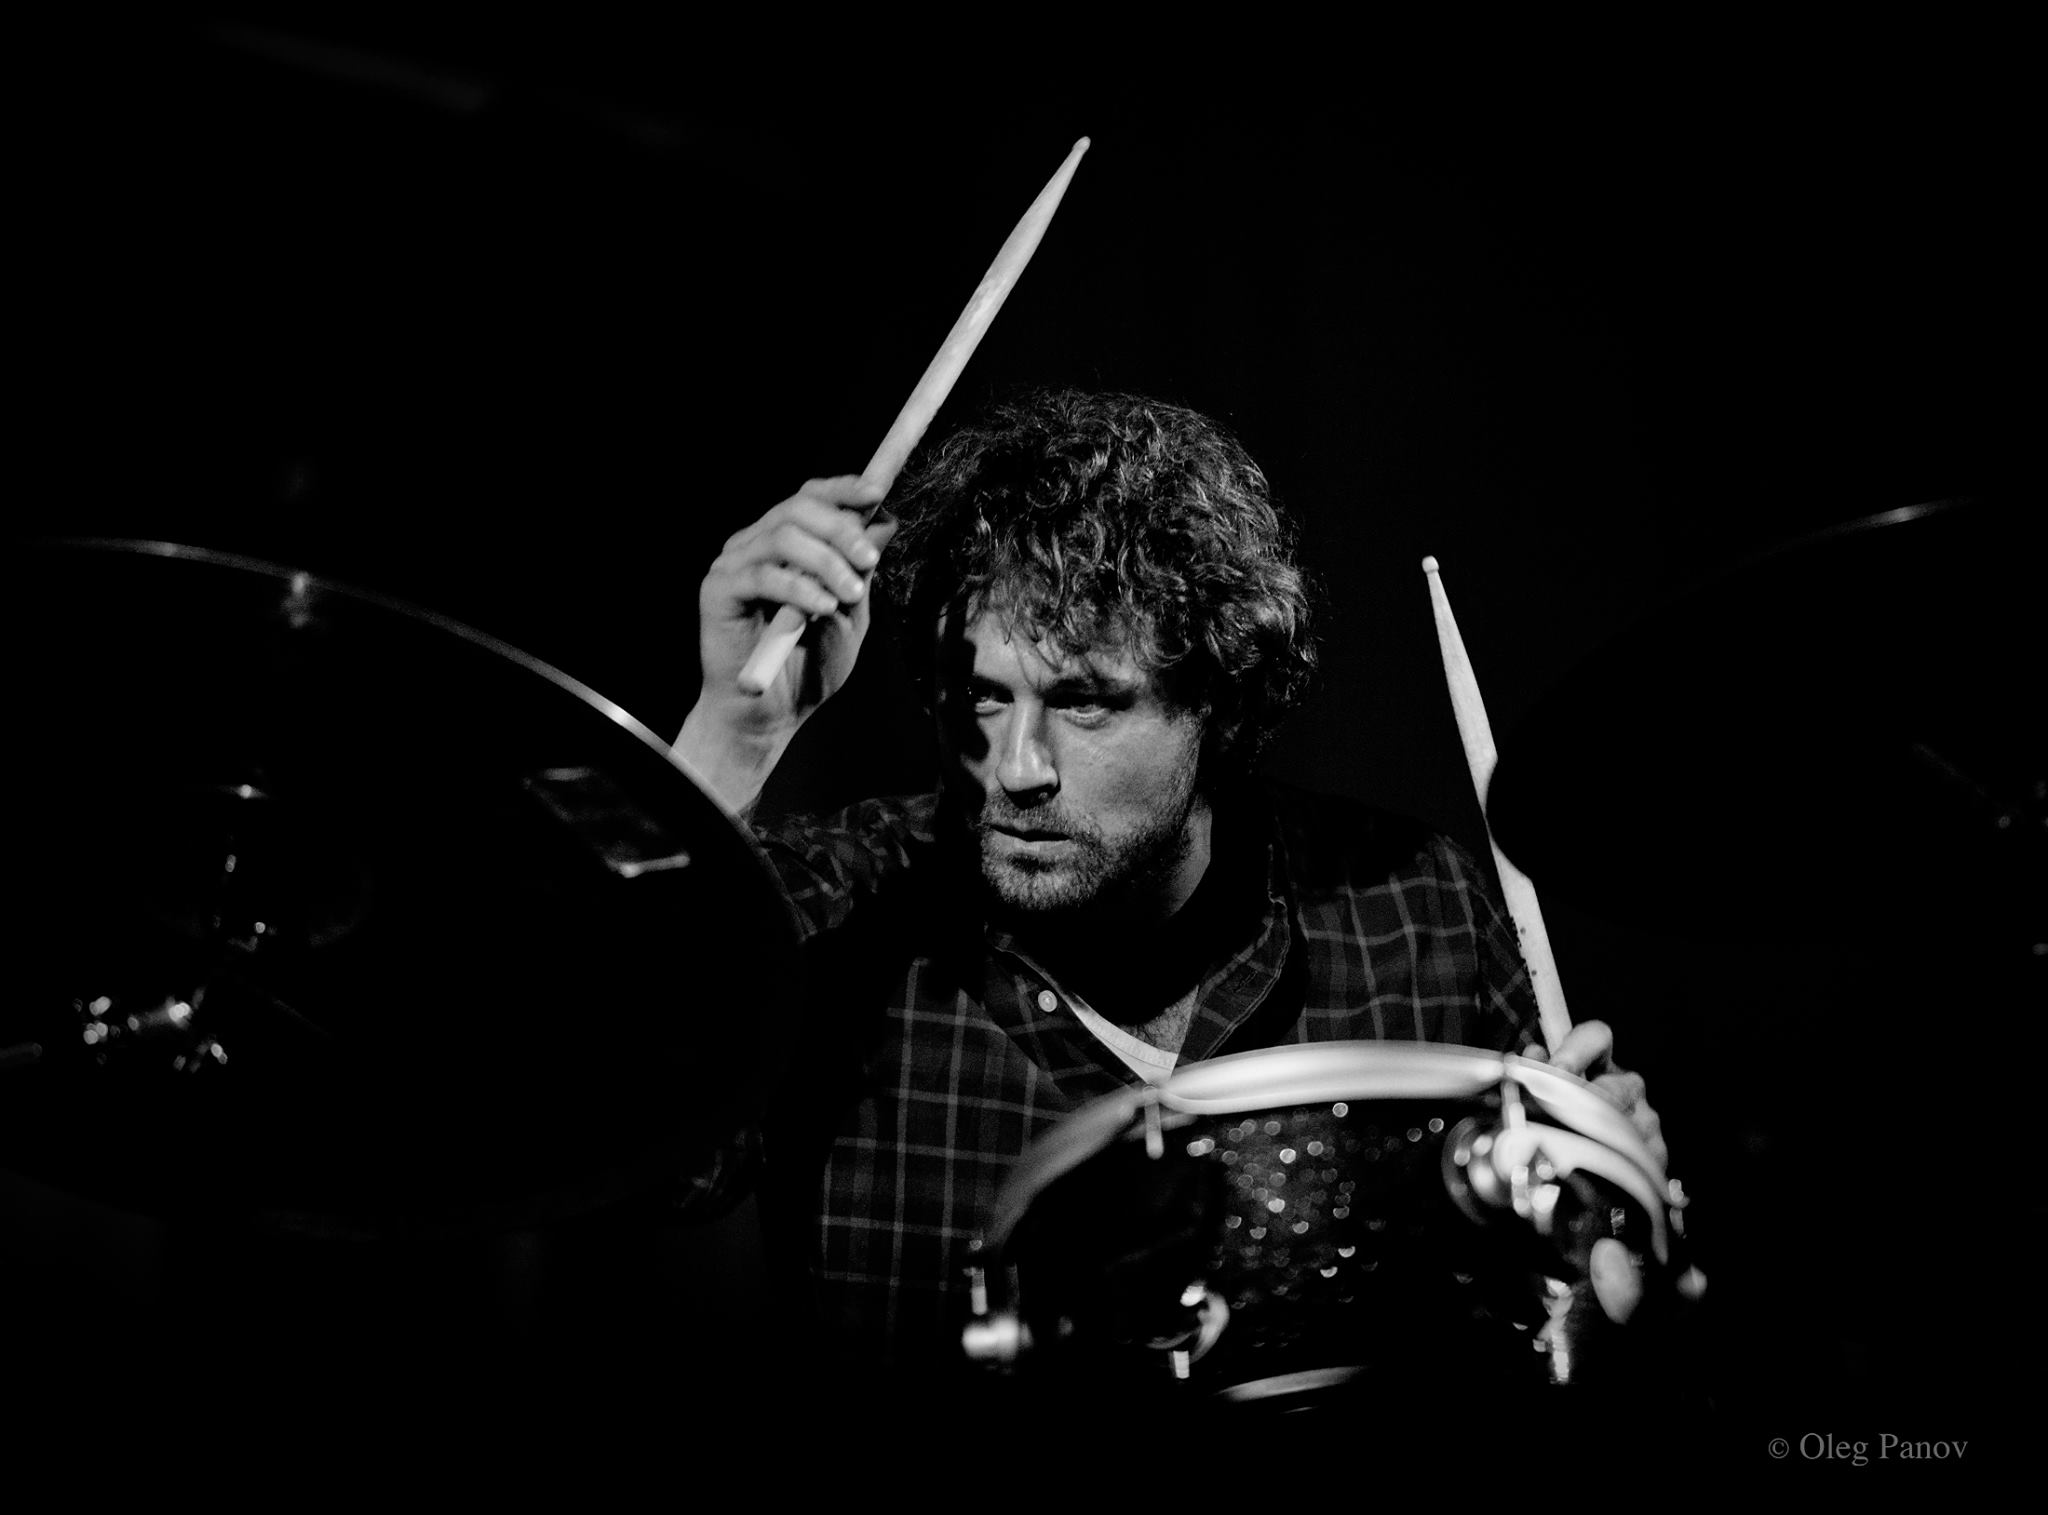 Florian Hoesl on drums